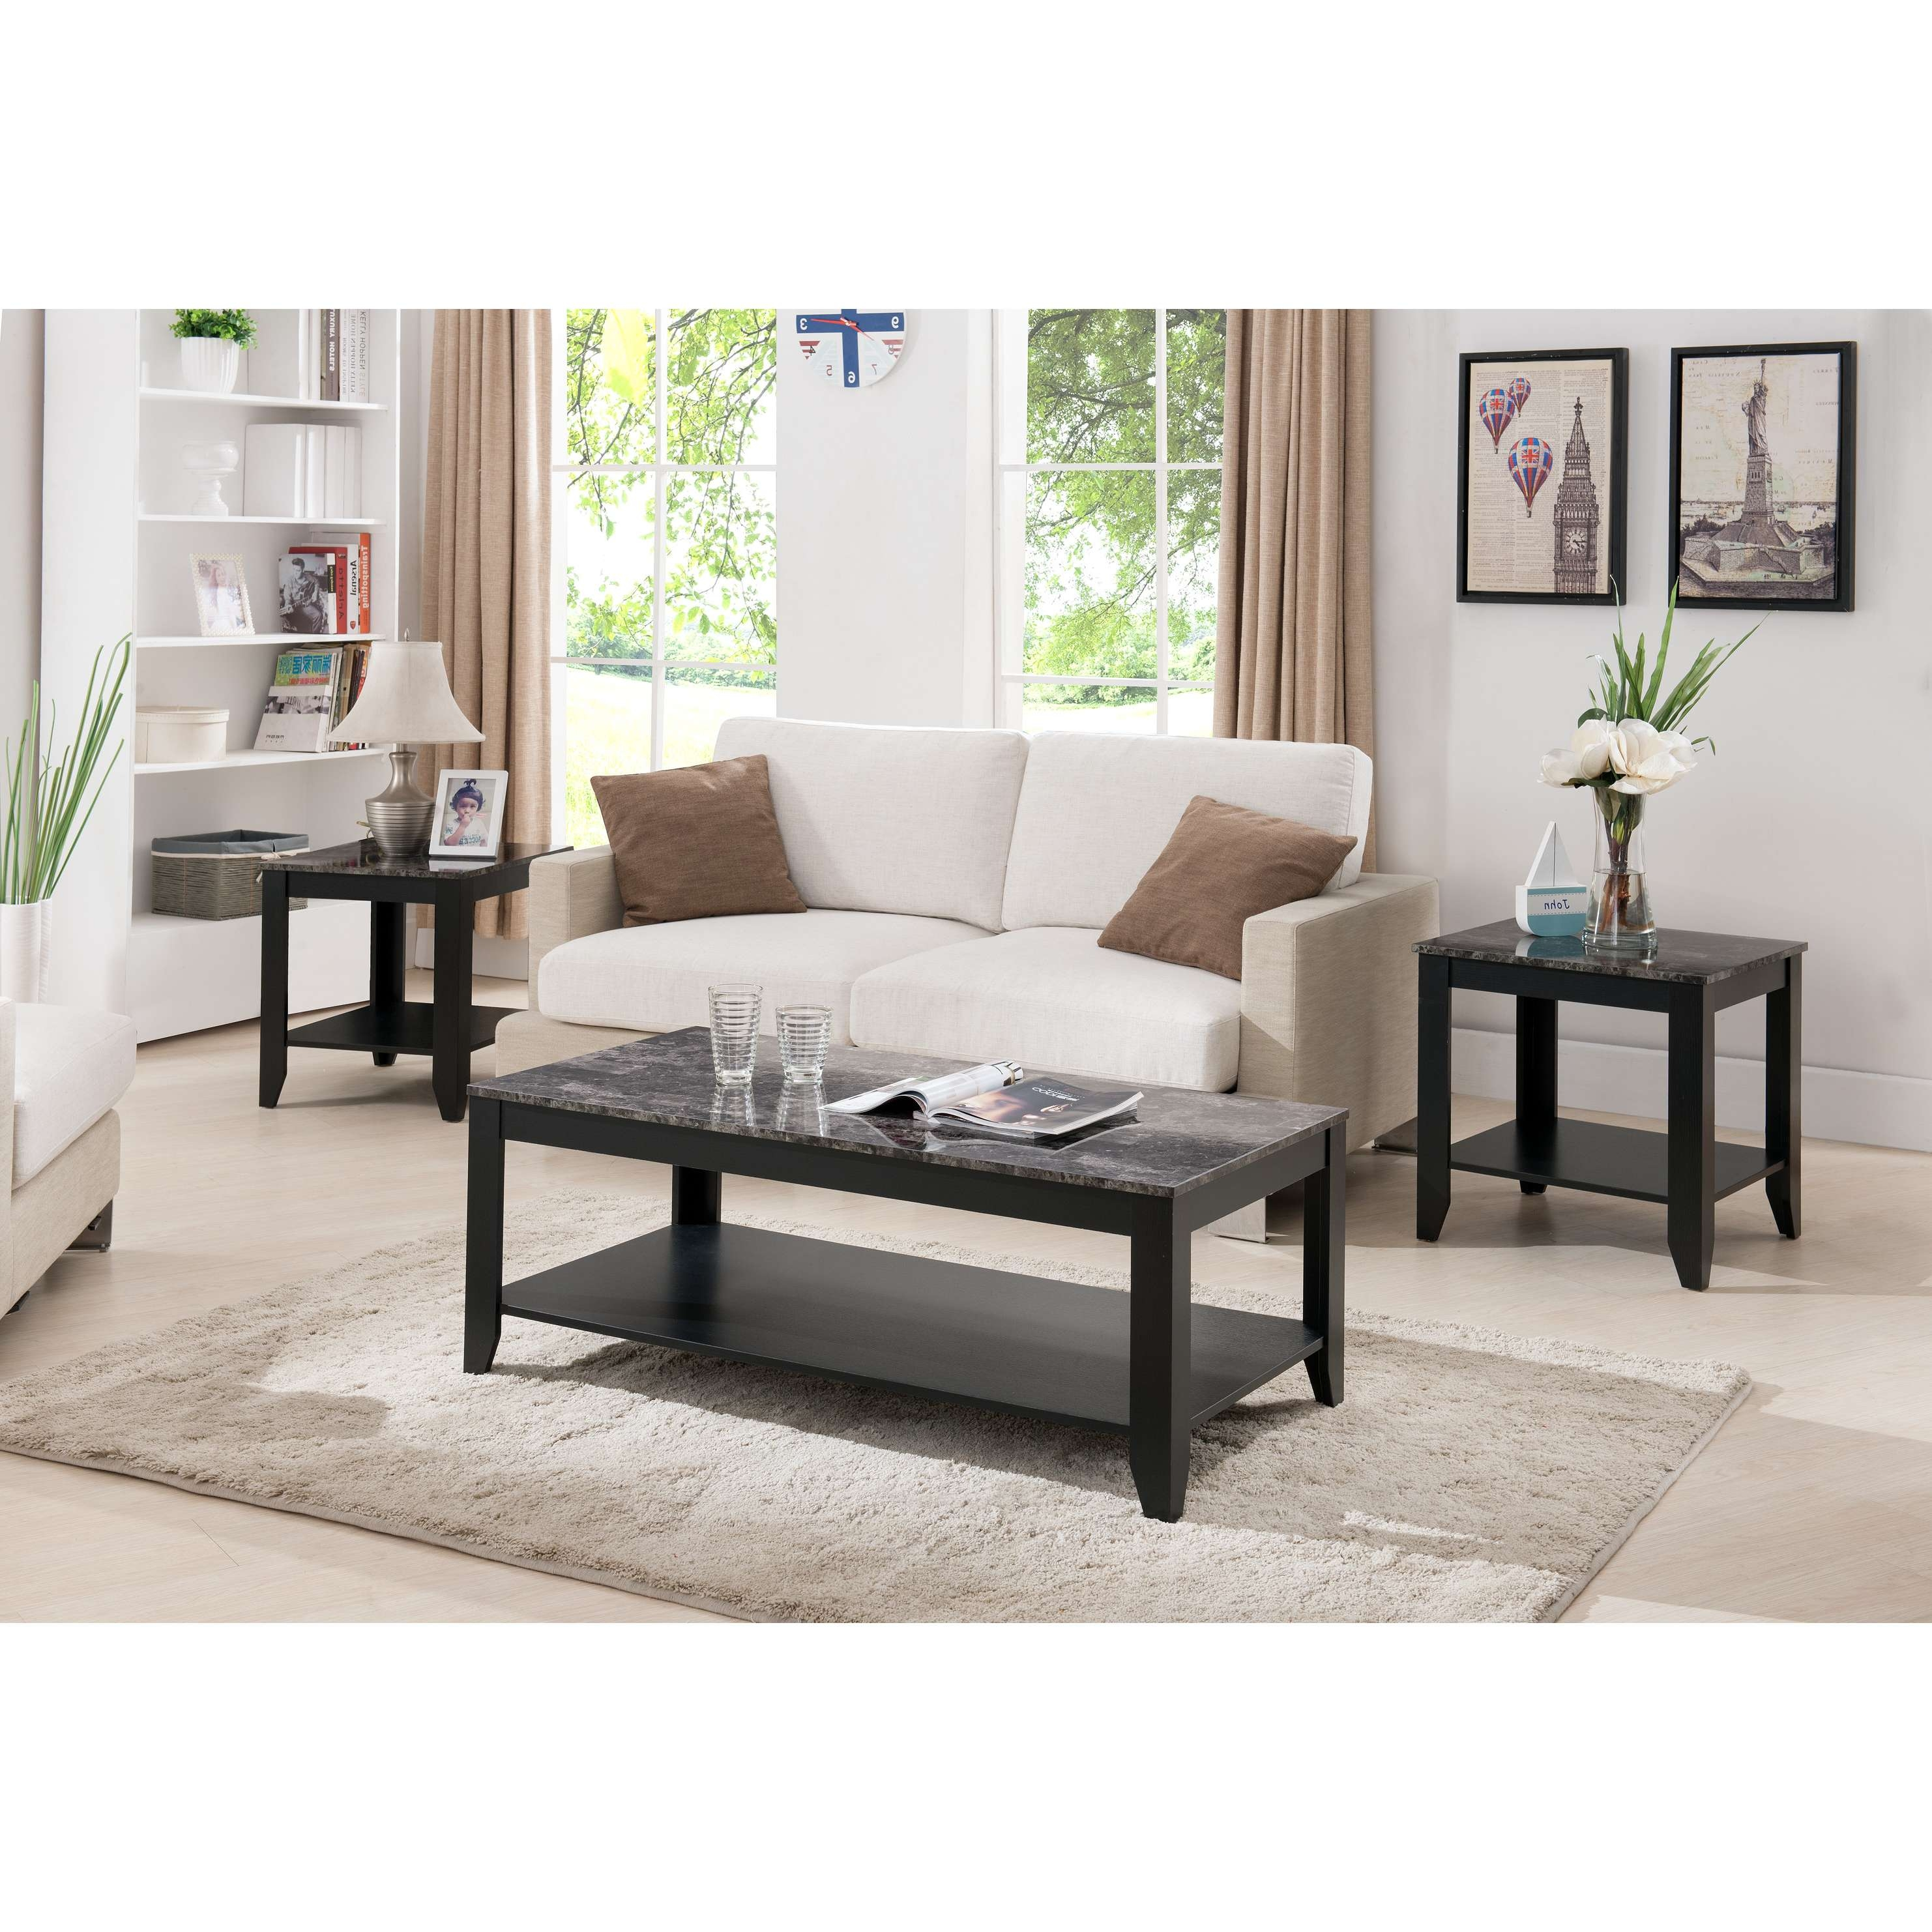 Coffee Tables Ideas: Astounding Coffee Table Sets With Drawers Regarding Latest Wayfair Coffee Table Sets (View 14 of 20)